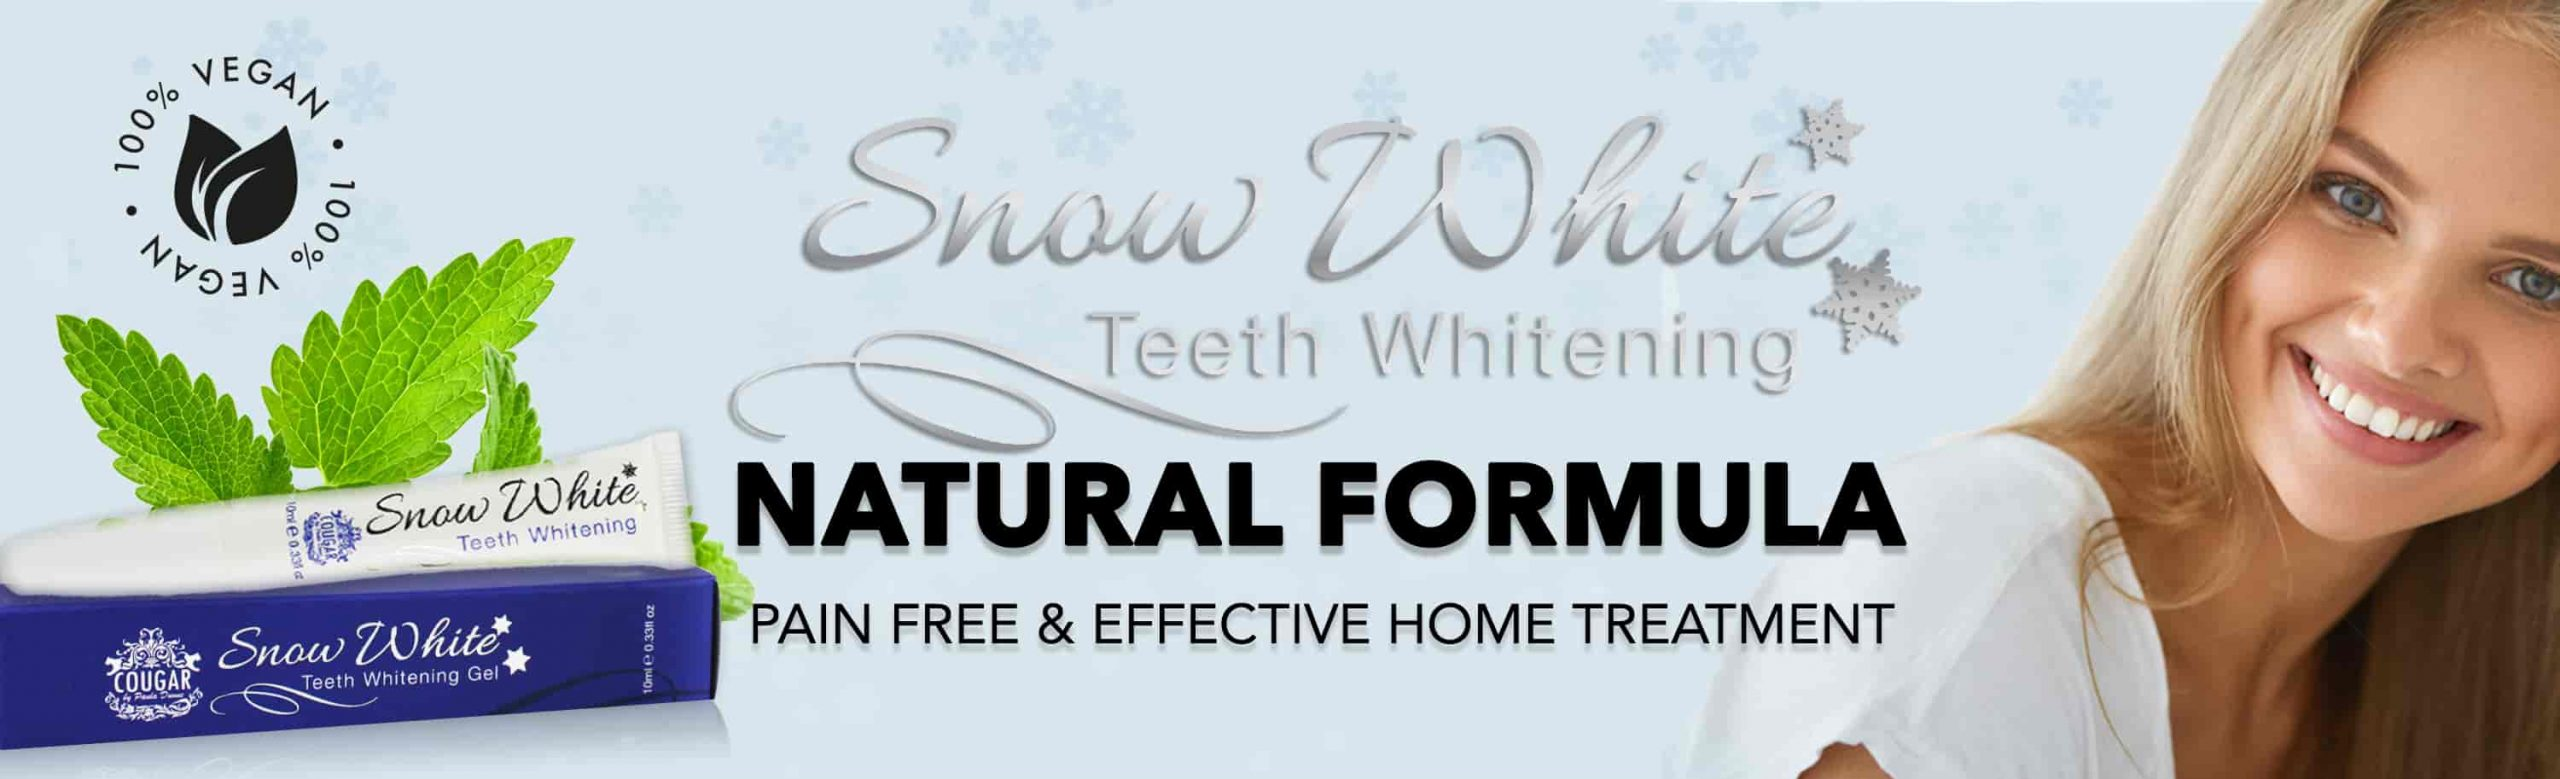 Natural Teeth Whitening Kits which give outstanding results.